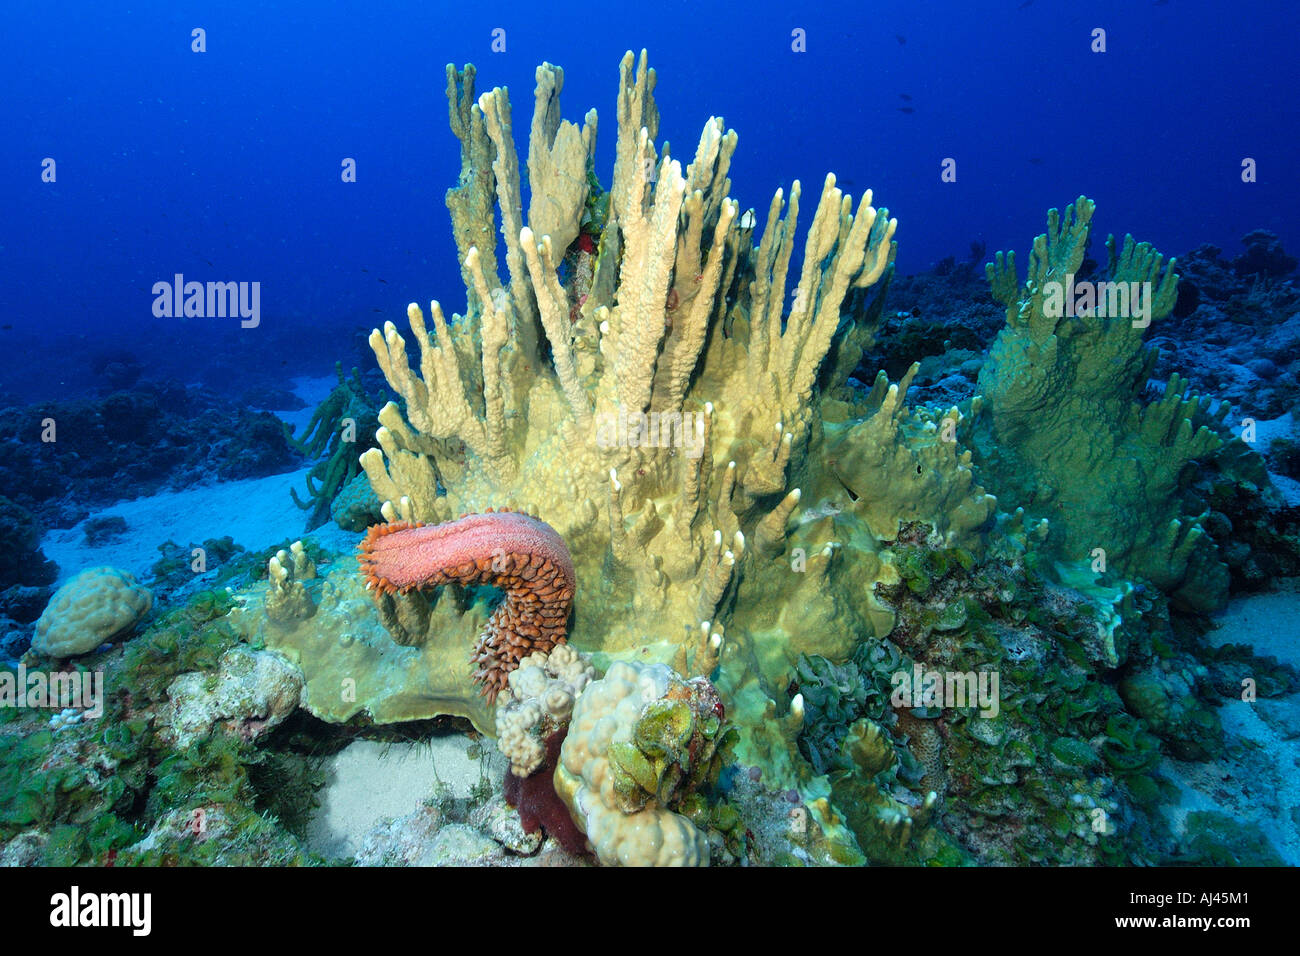 Sea cucumber Thelenota ananas falling off Fire coral Millepora platyphylla Ailuk atoll Marshall Islands Pacific - Stock Image